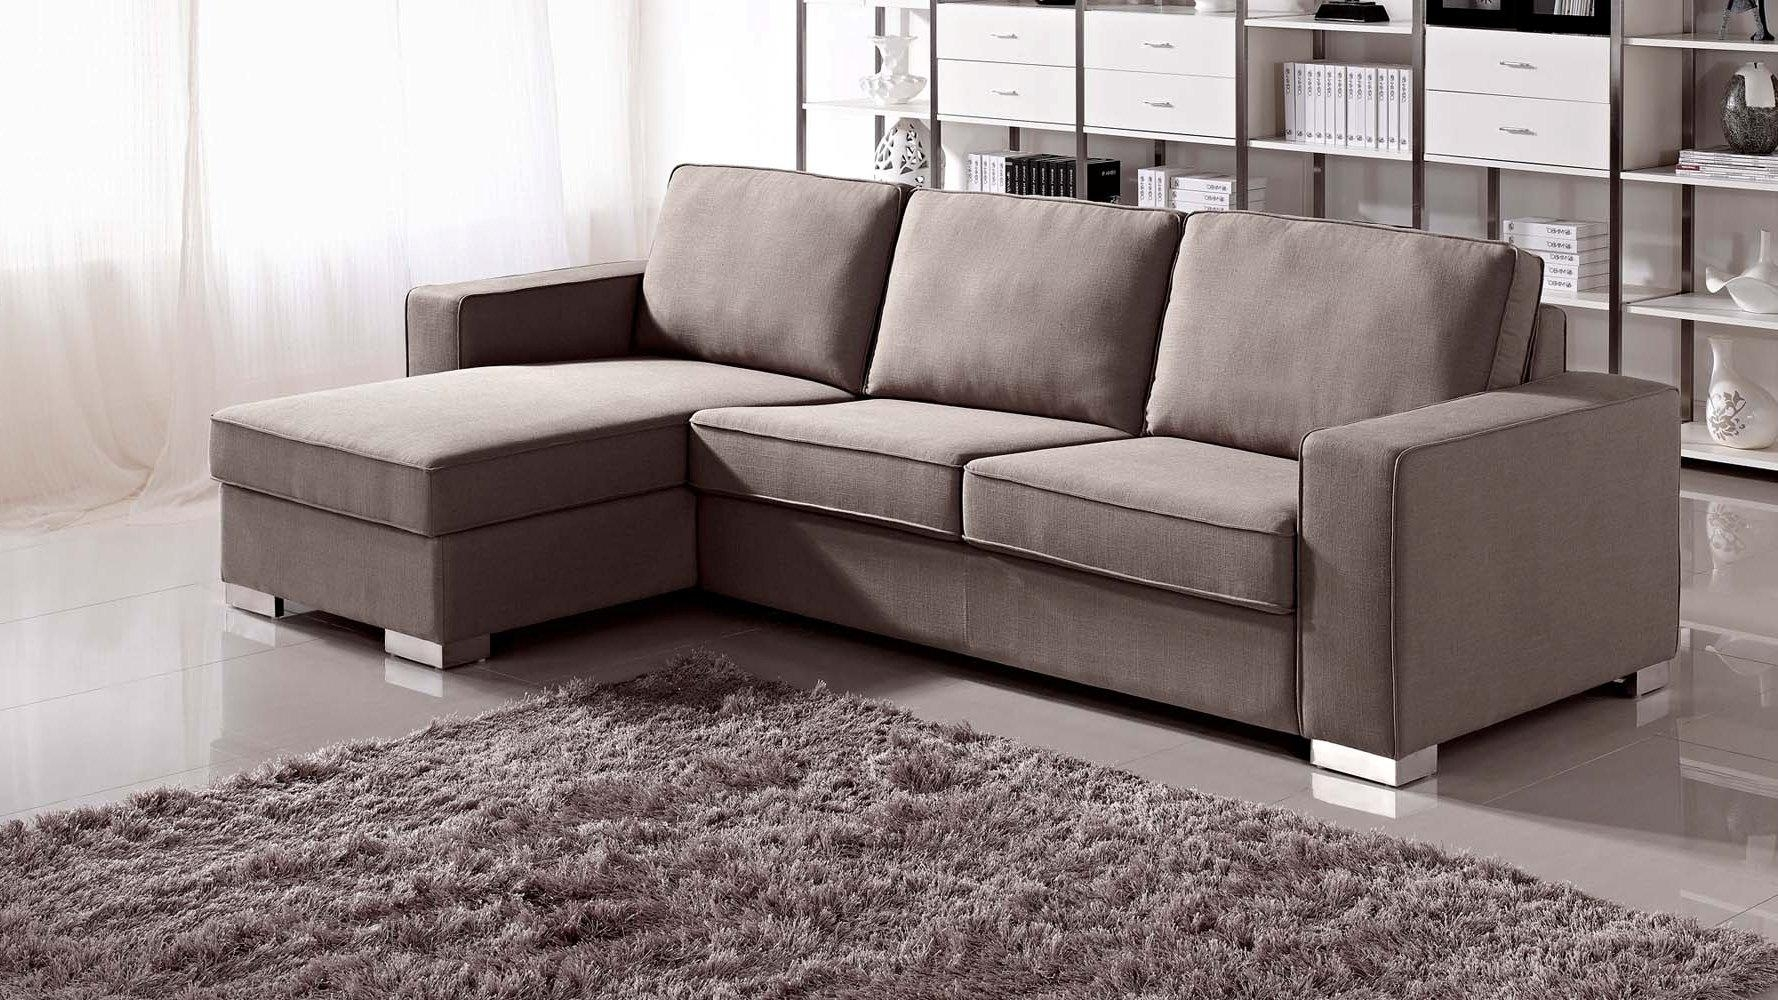 Furniture: Wondrous Alluring Sectional With Sleeper For Home Throughout Sleeper Recliner Sectional (View 7 of 20)